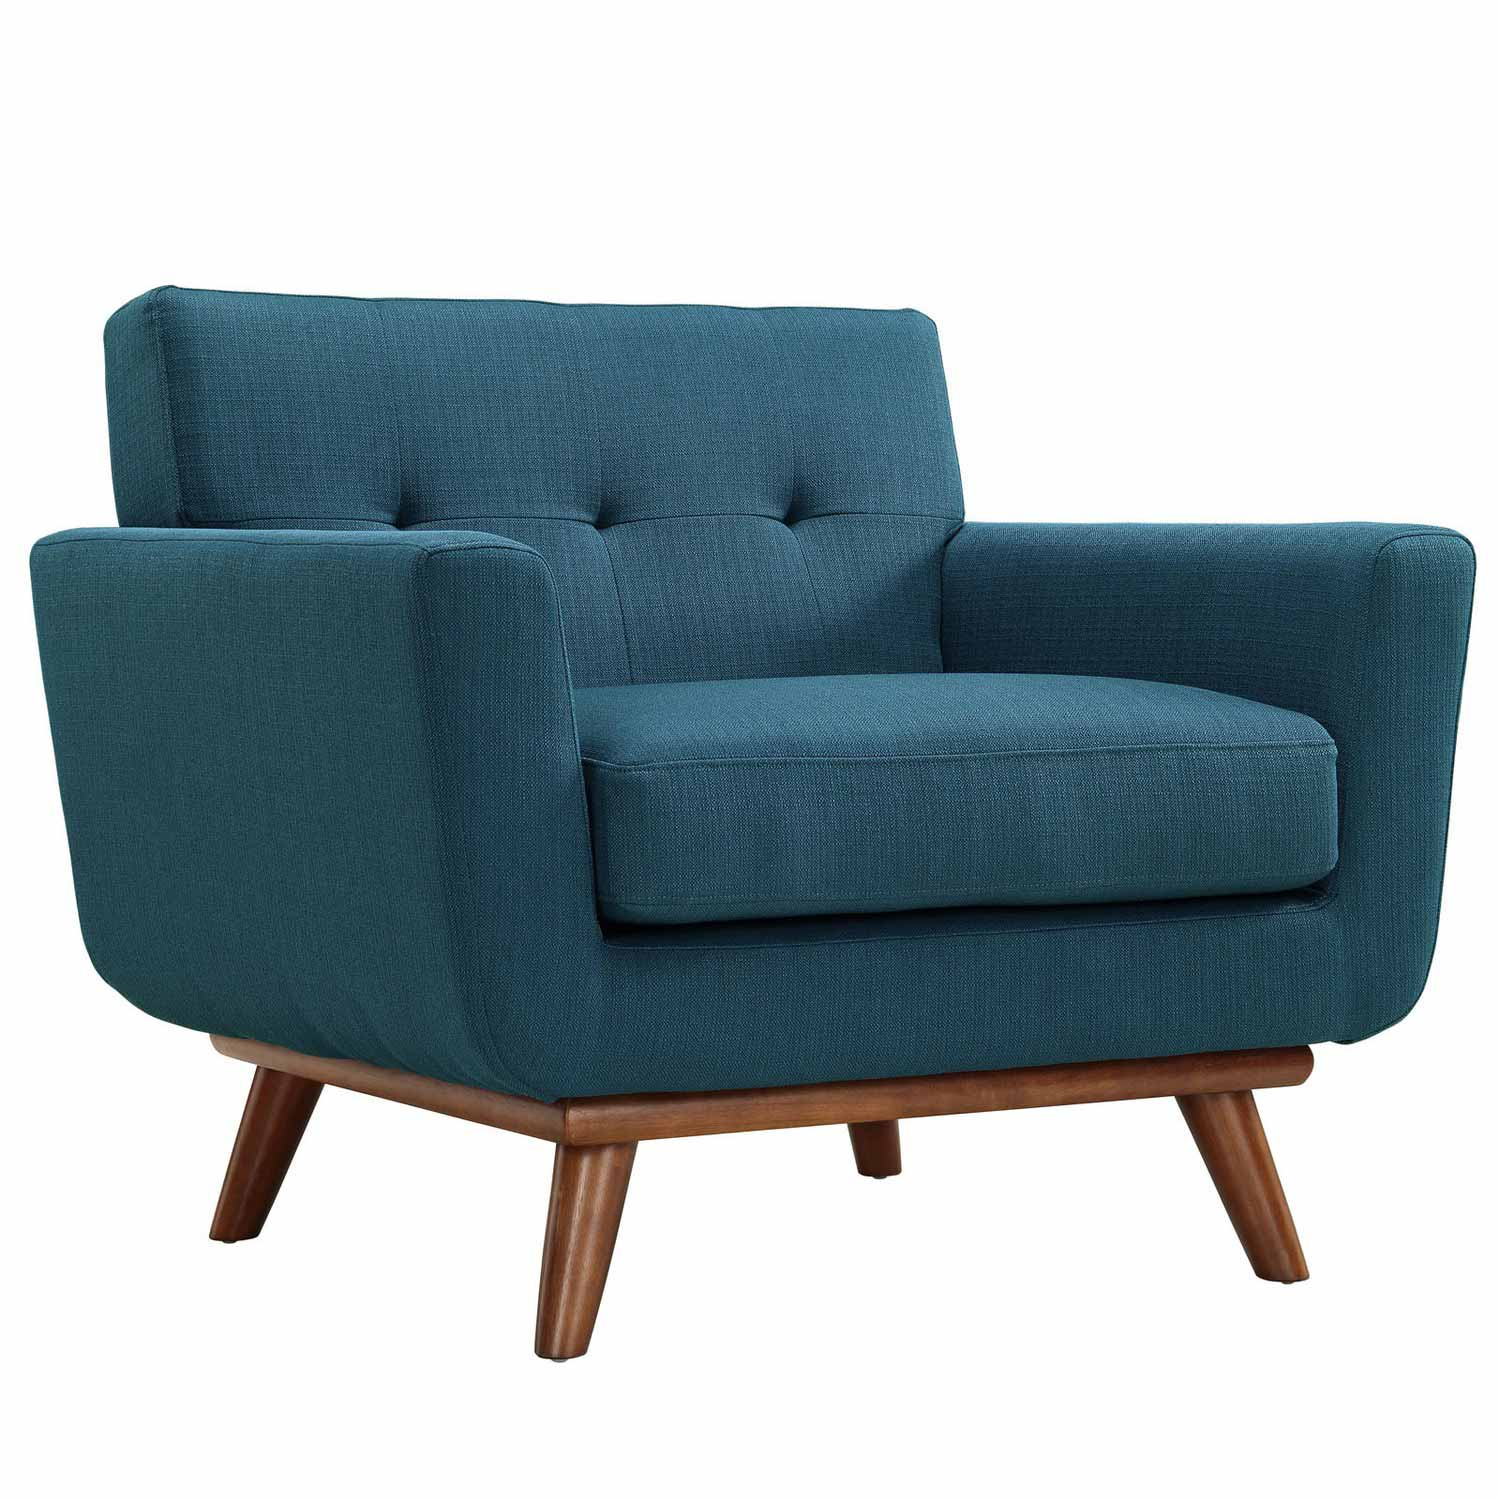 Modway Engage Armchairs and Sofa Set of 3 - Azure